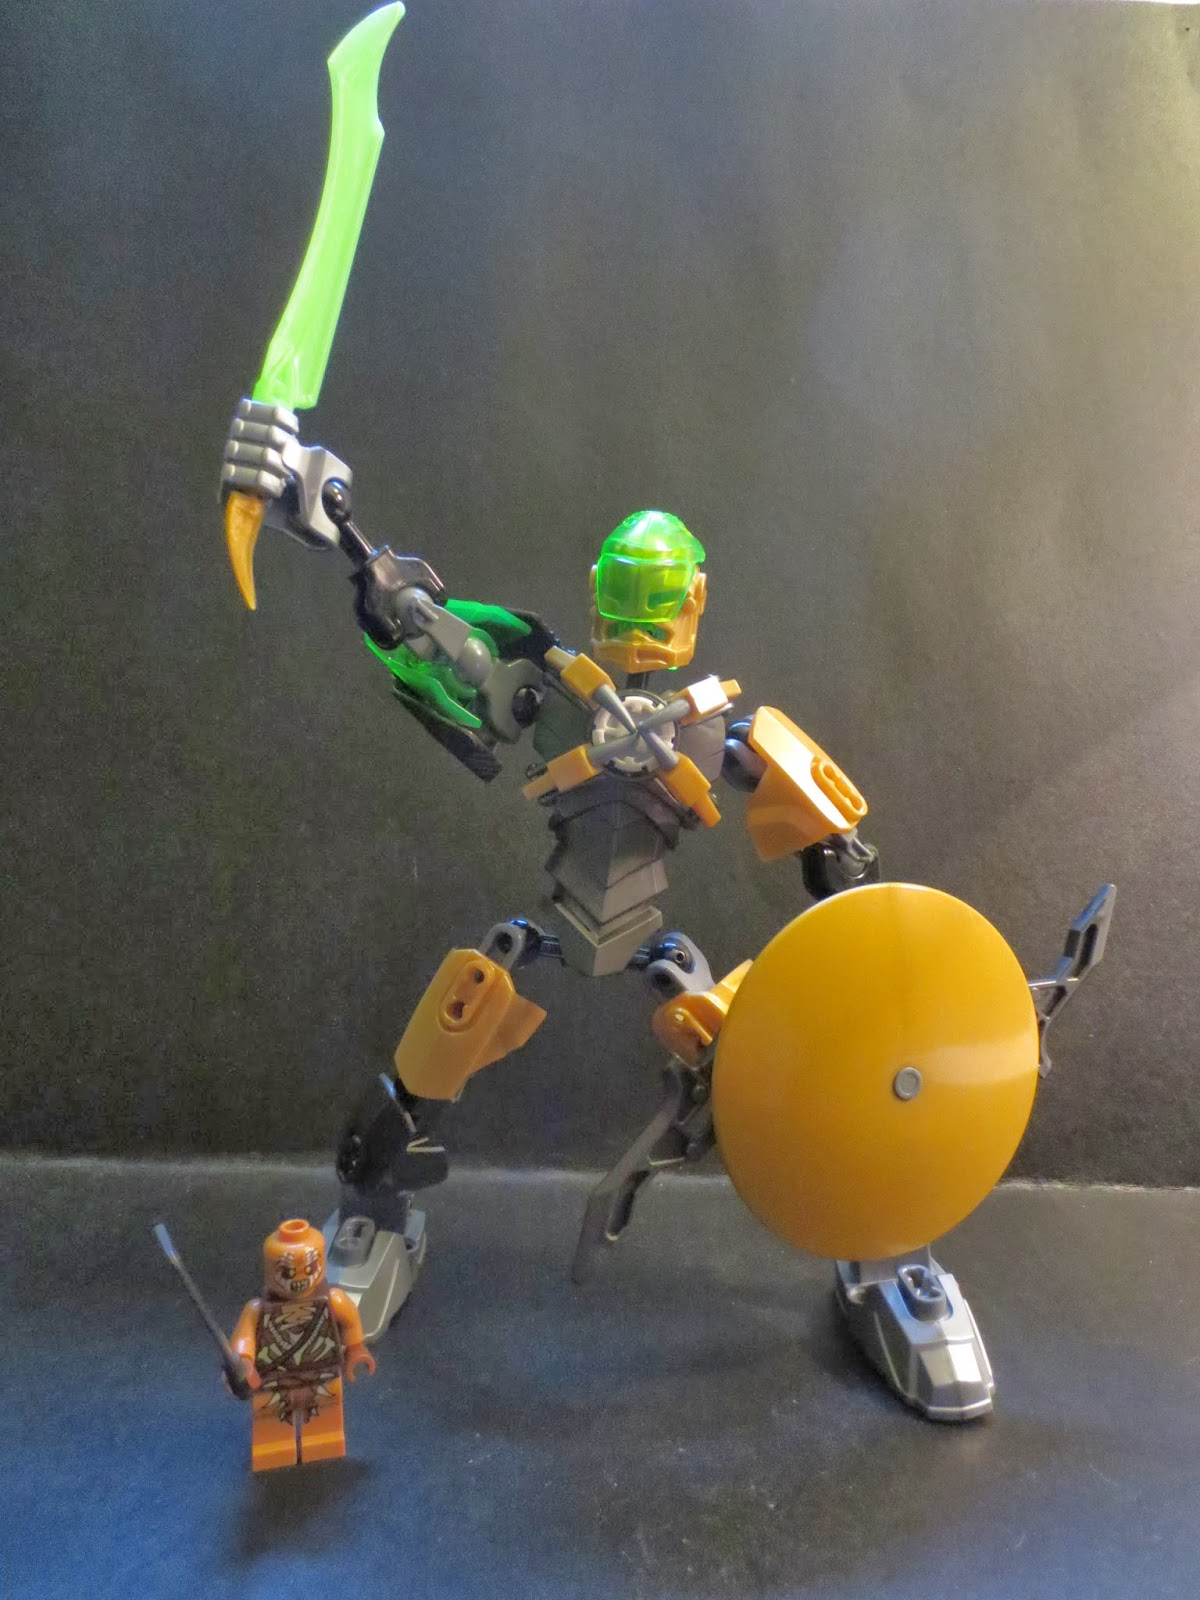 The Epic Review Lego Review Rocka From Hero Factory Brain Attack